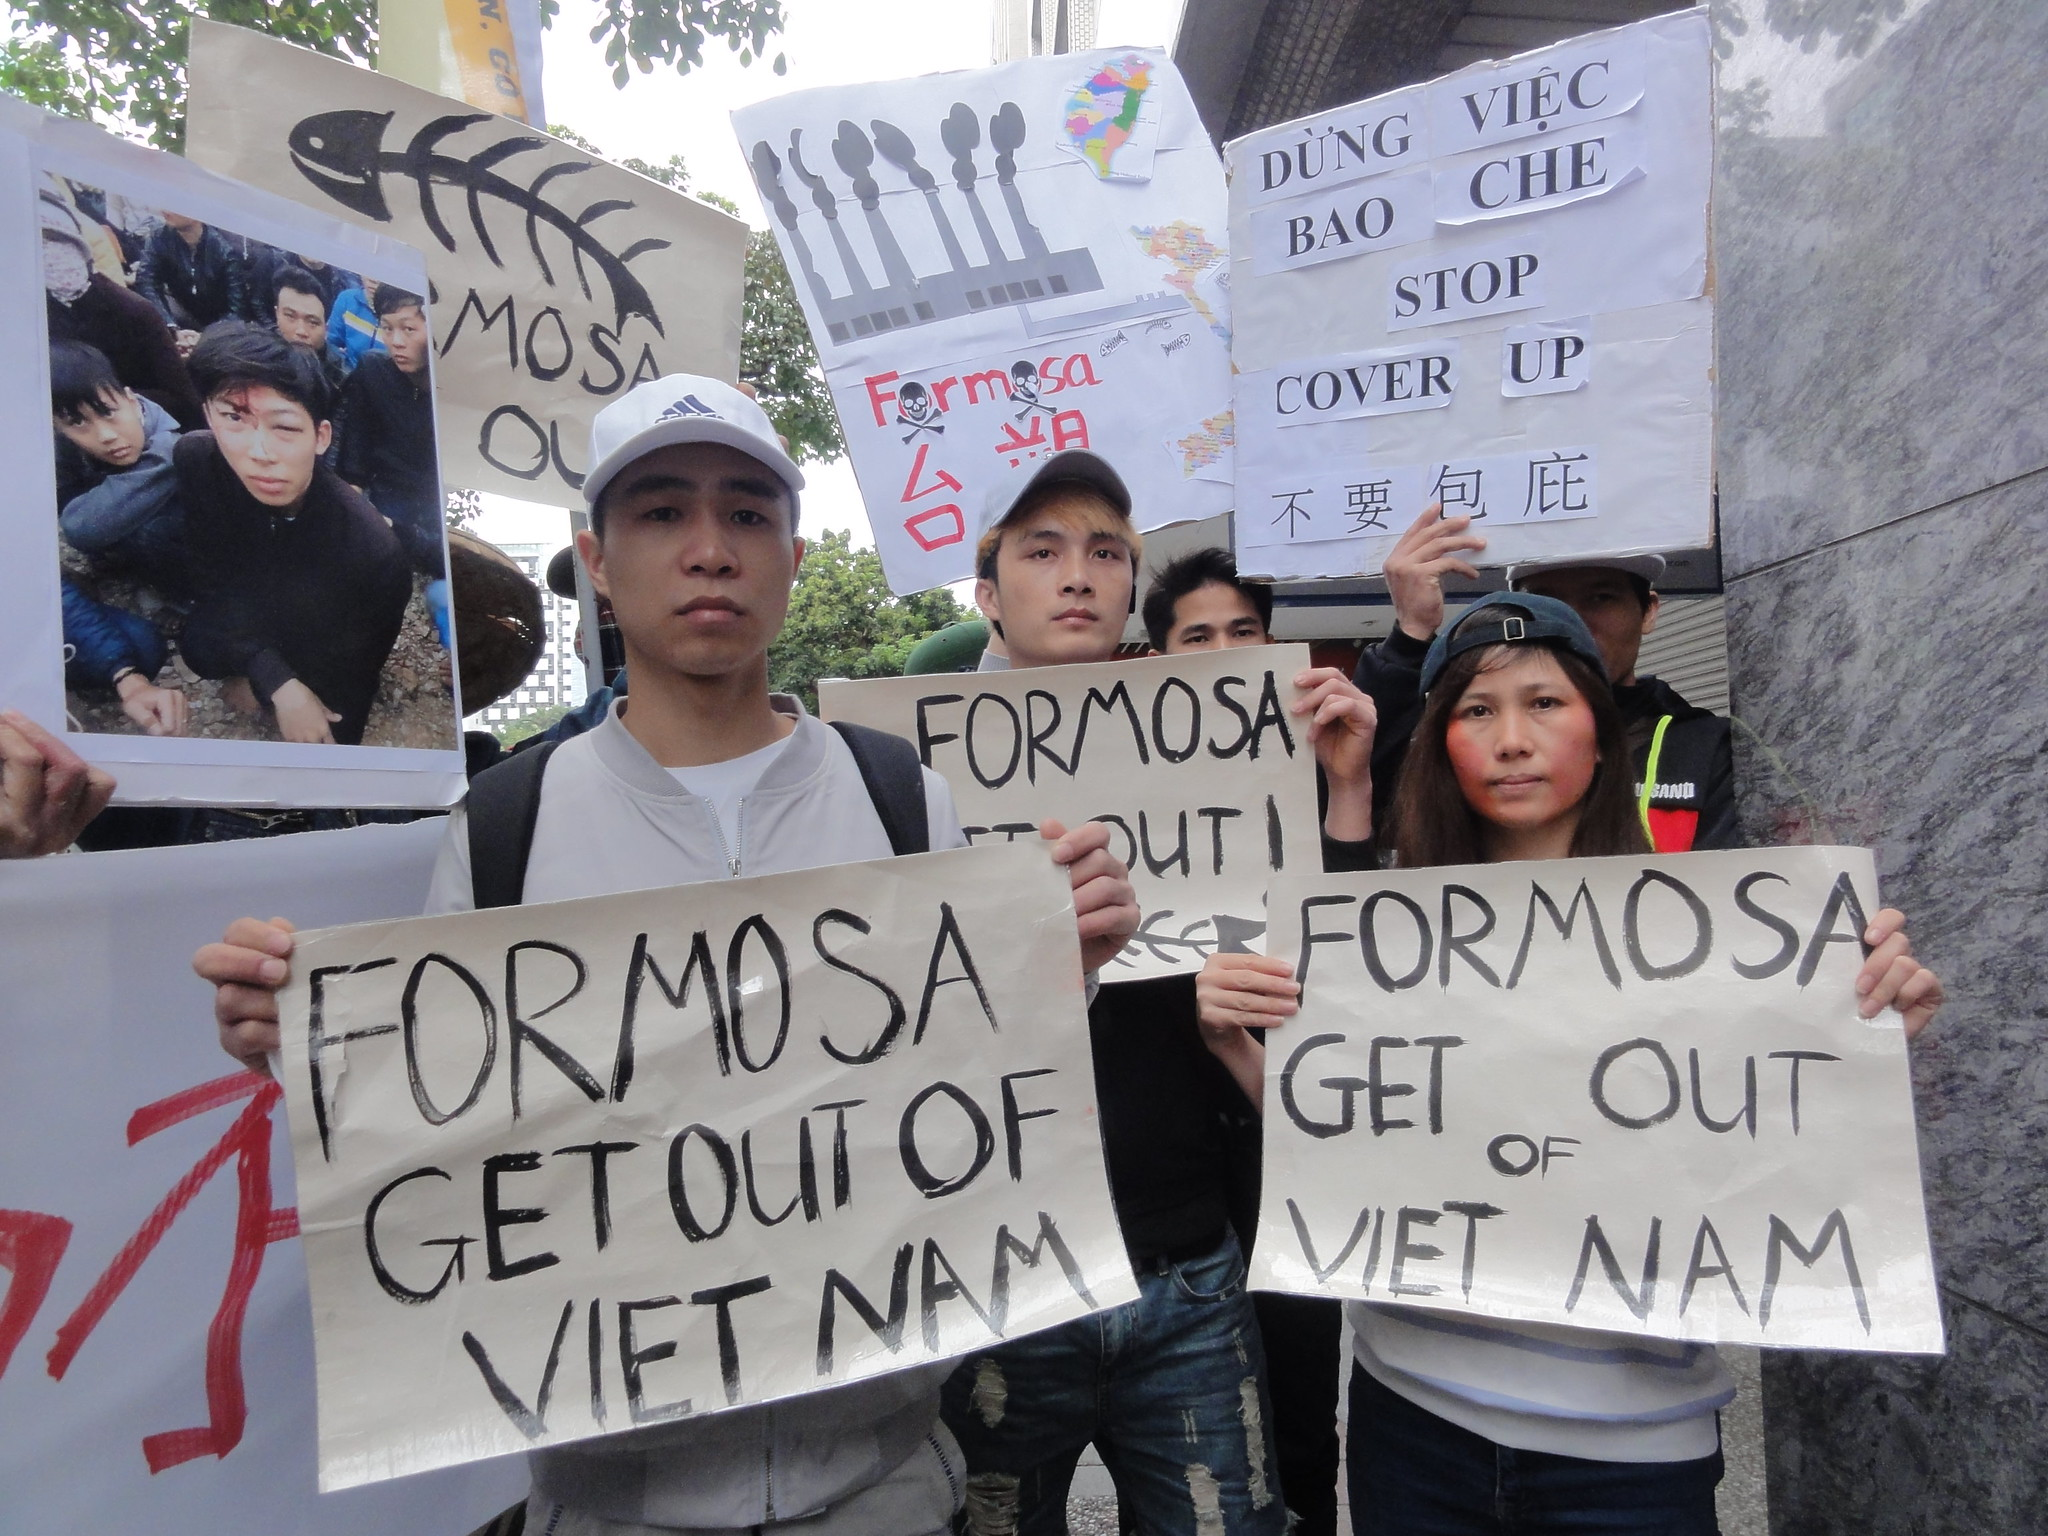 抗議台塑污染越南海洋,越南移工高呼:「Formosa Get Out Of Vietnam!」(攝影:張智琦)